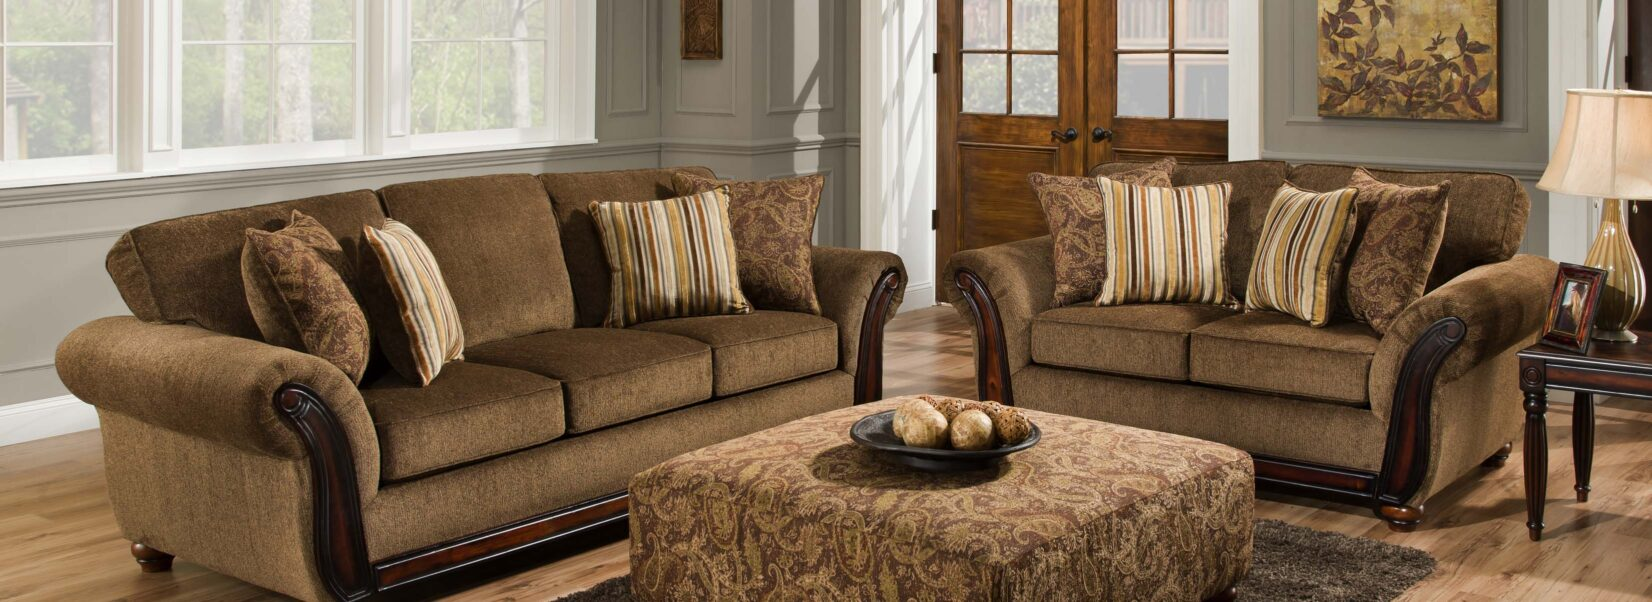 Image from baileysfurniture.com